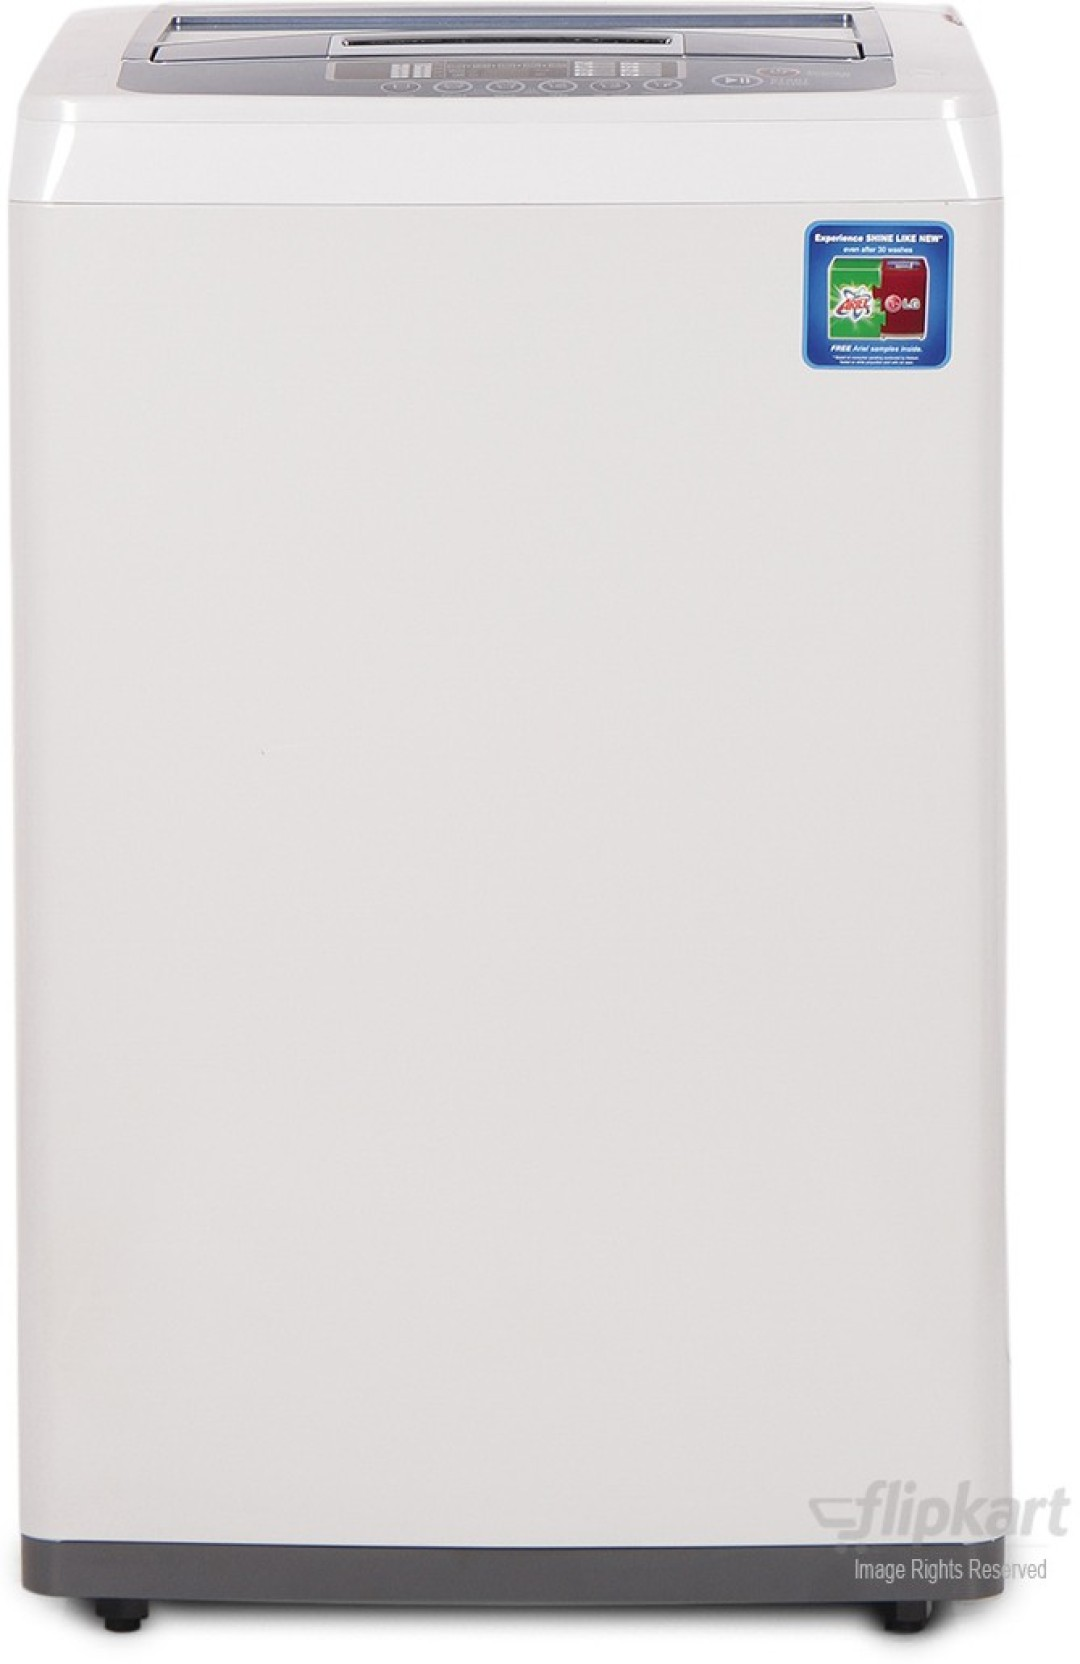 Lg 6 2 Kg Fully Automatic Top Load Washing Machine White